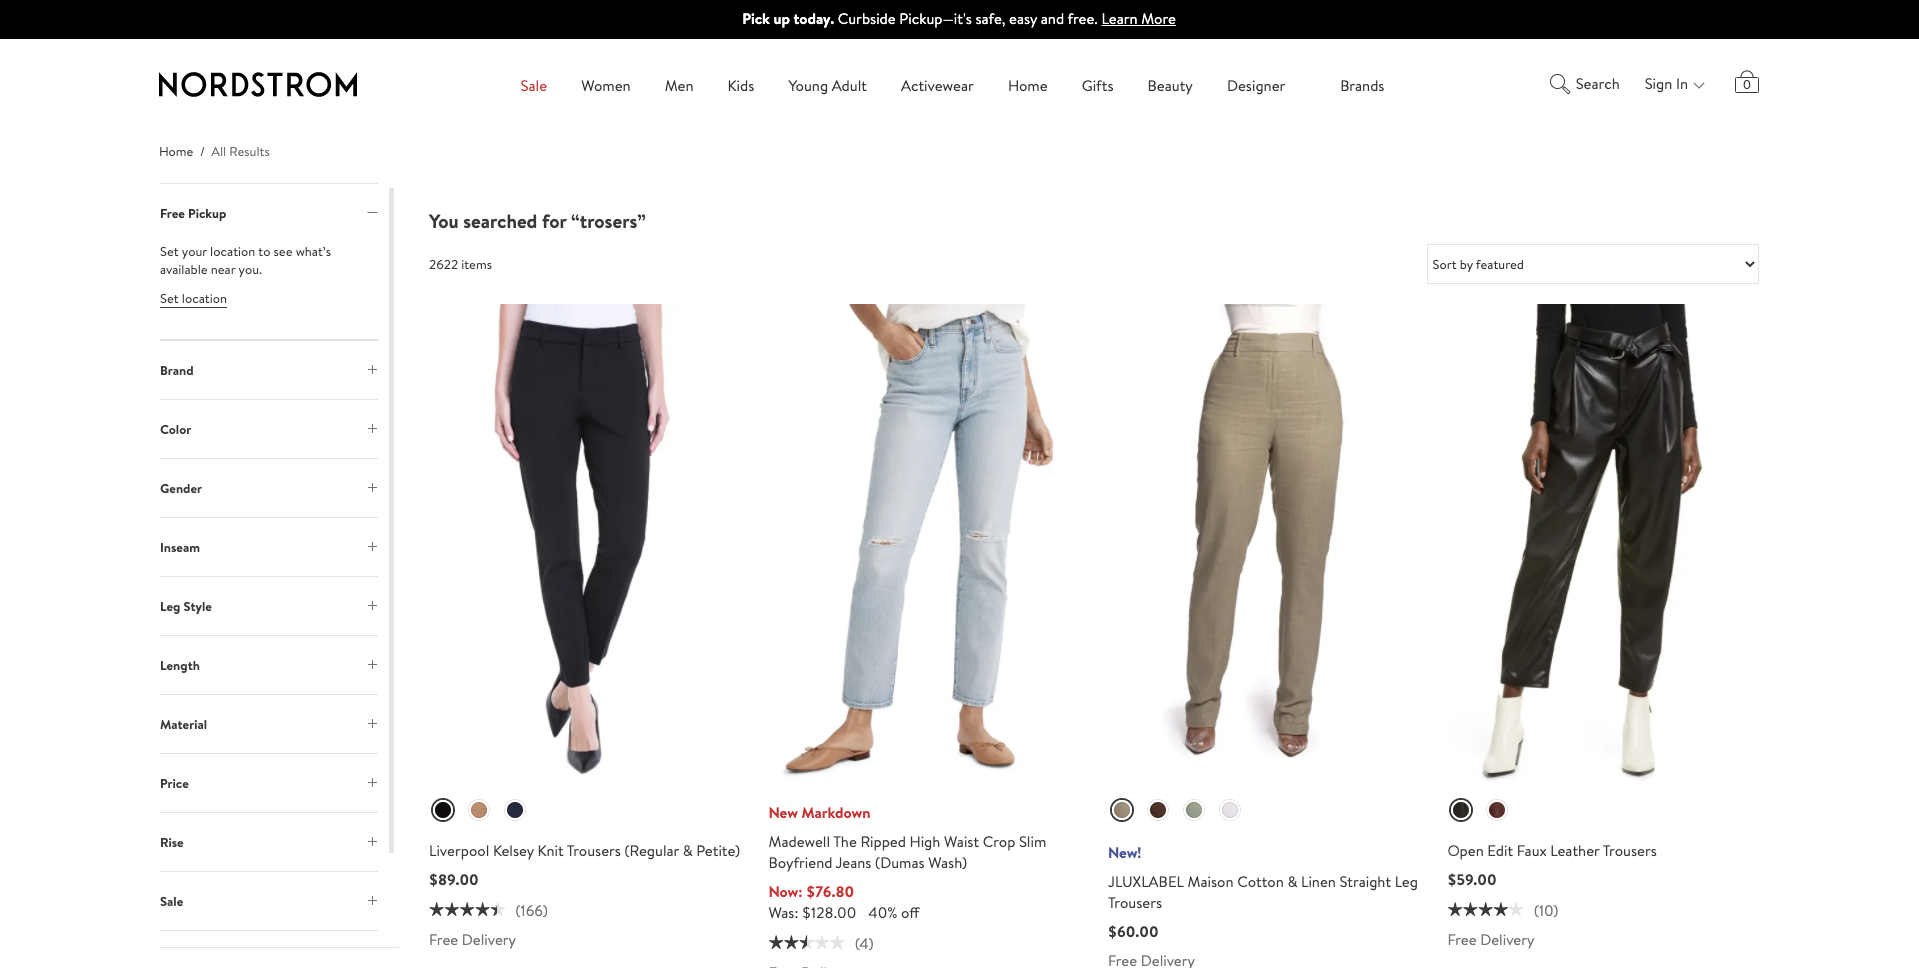 example of search algorithm by Nordstrom